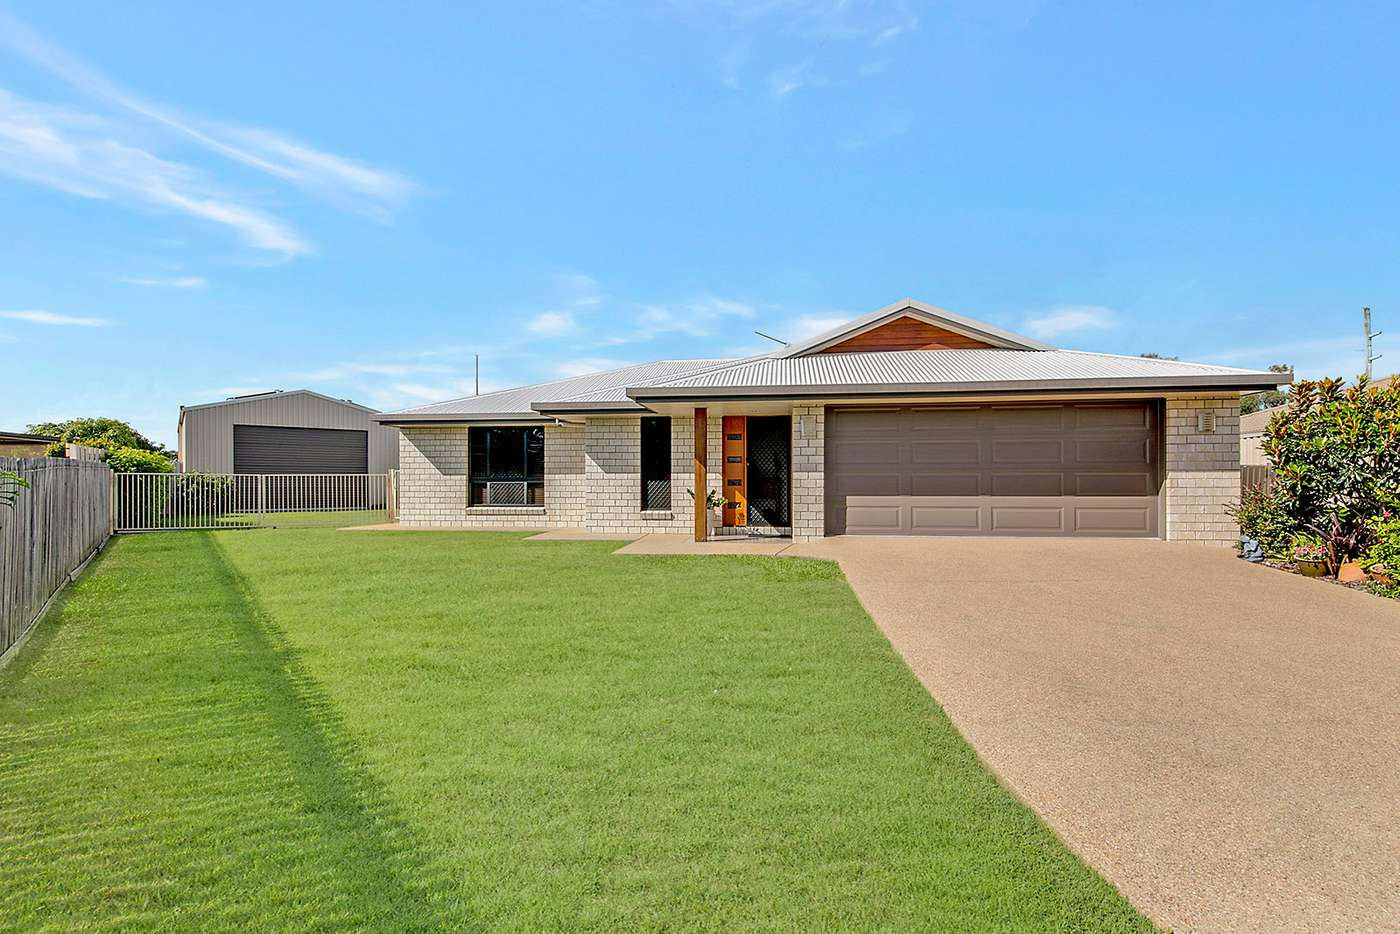 Main view of Homely house listing, 2 FORRESTER WAY, Yeppoon QLD 4703